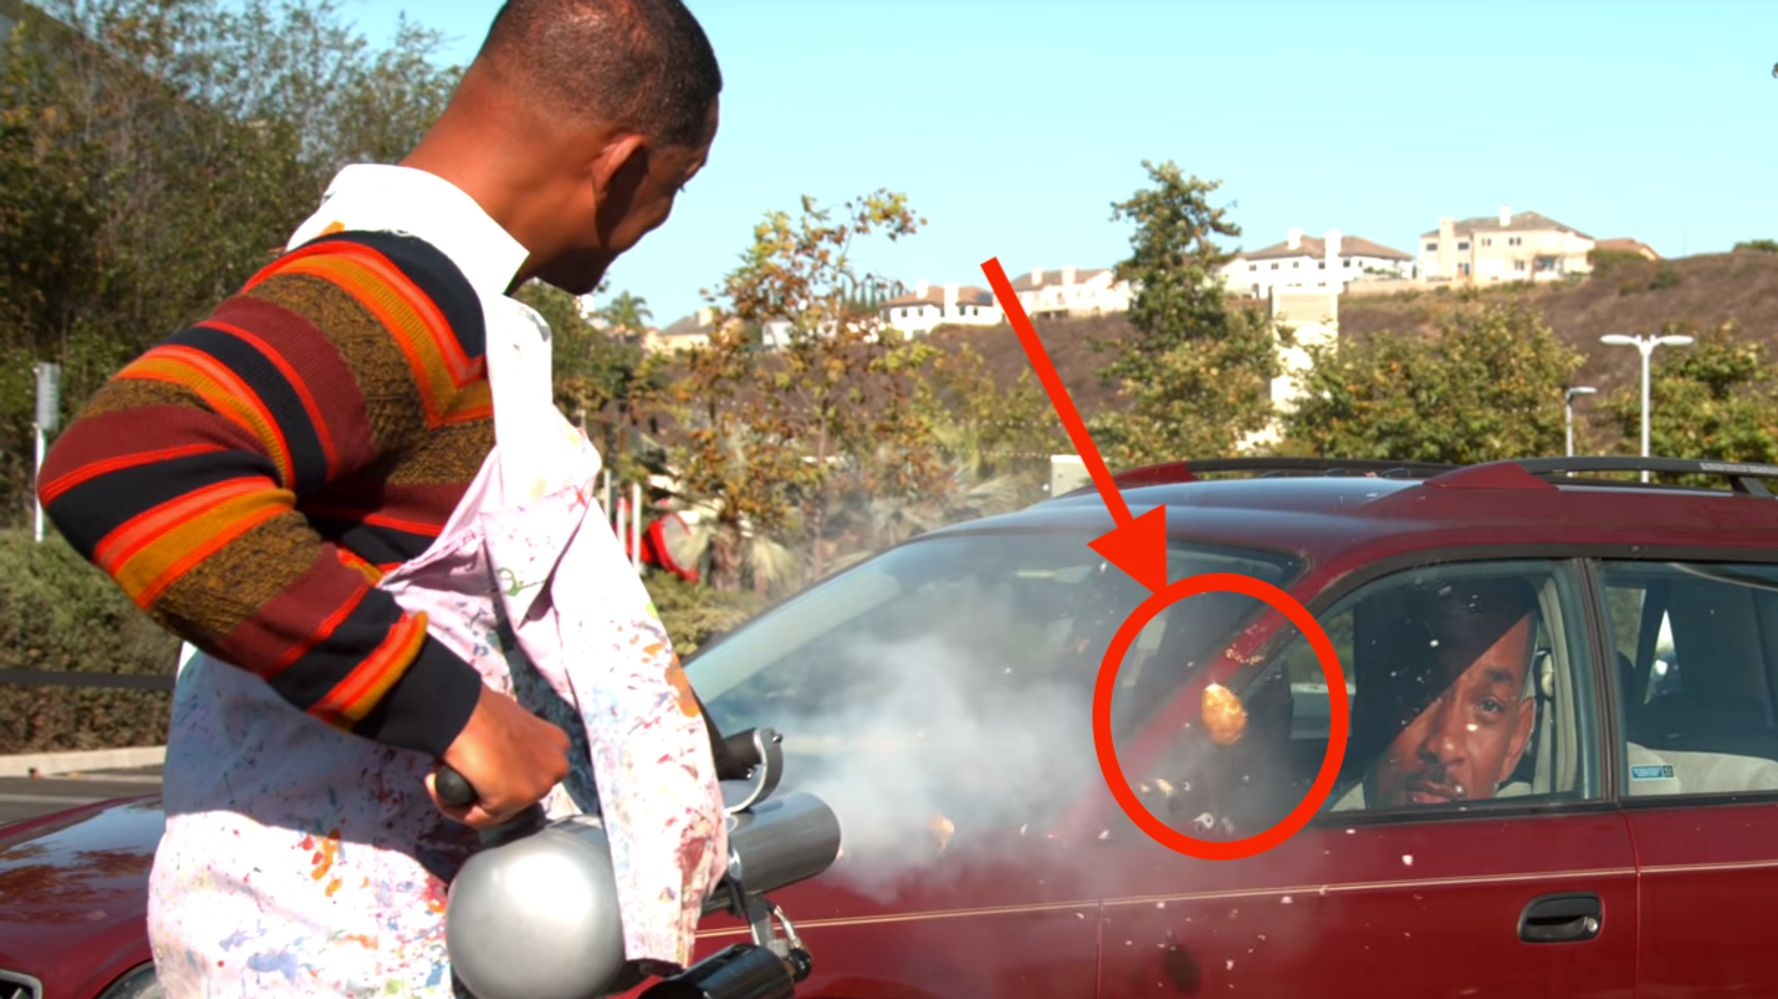 Westlake Legal Group 5da070b120000058074ffffa Will Smith Tries Trashing Car With Potato Cannon, Fails In Spectacular Slow Motion